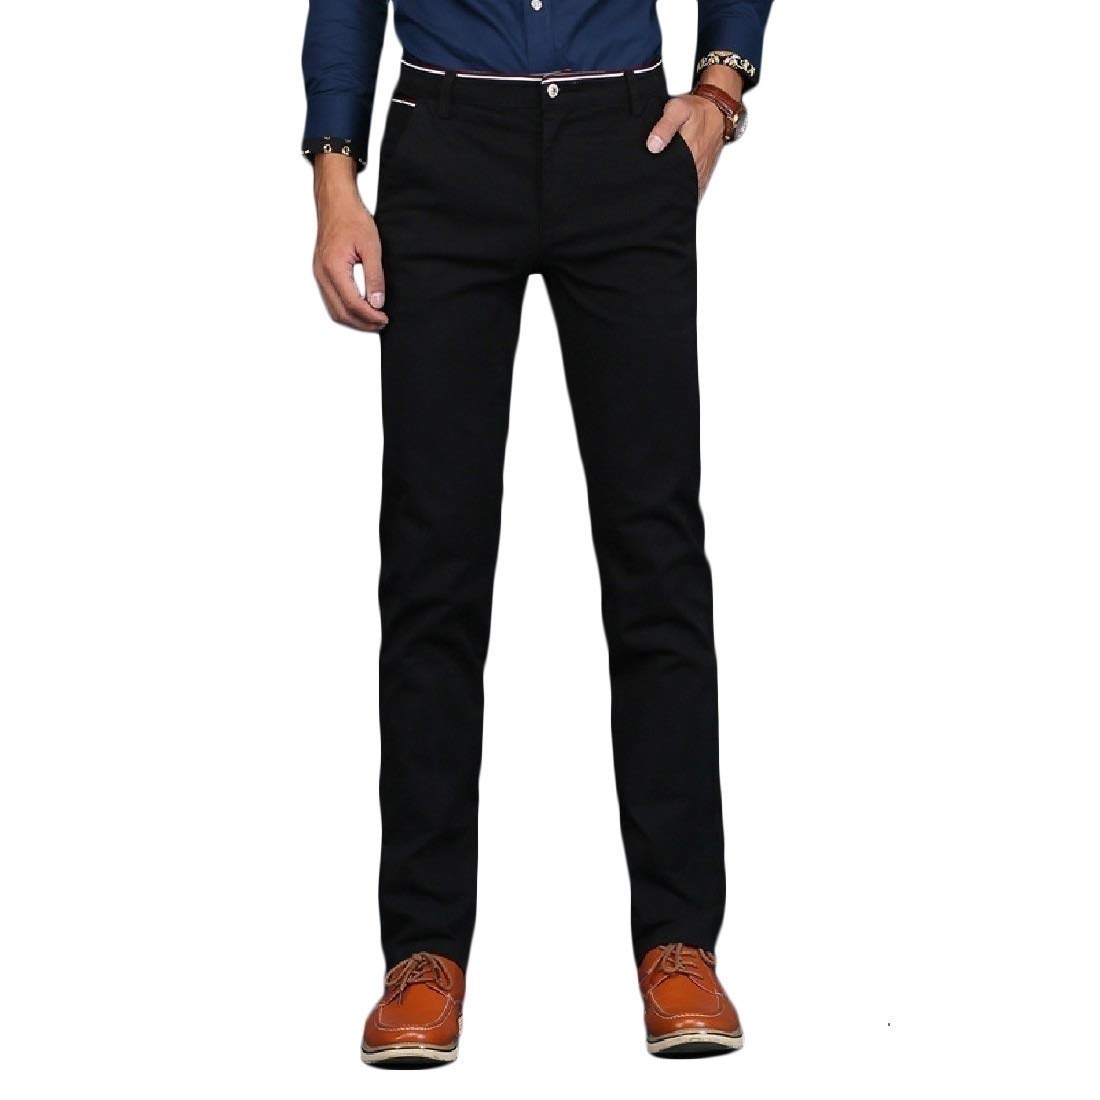 Mfasica Mens Plus Size Butt Lifter Silm Straight Business Pants